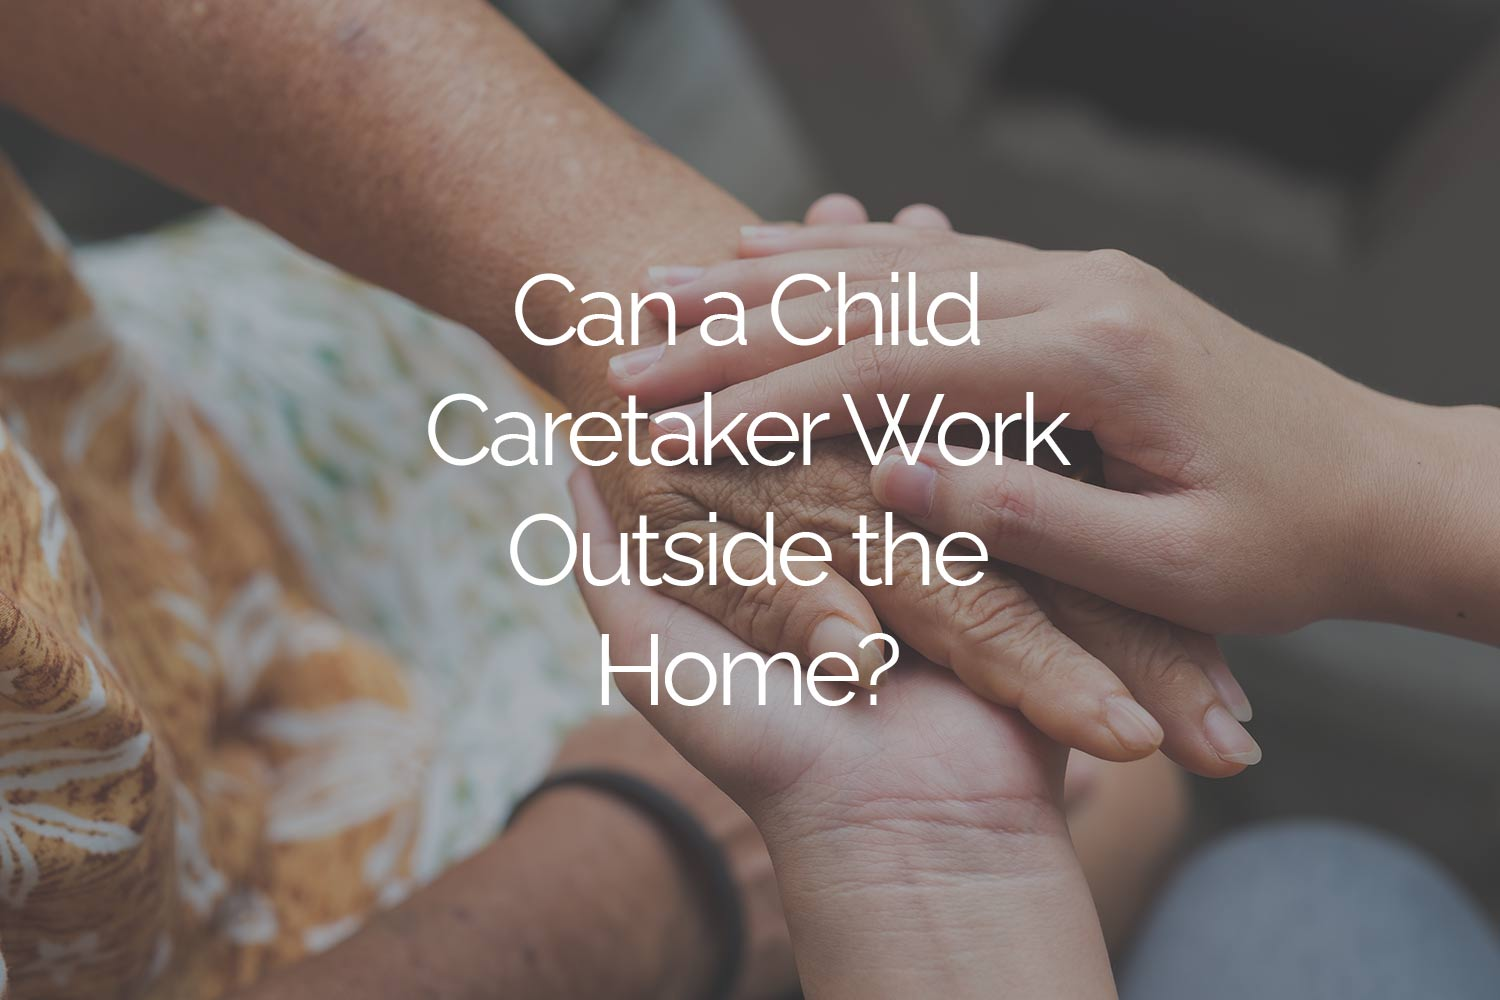 Can a Child Caretaker Work Outside the Home?